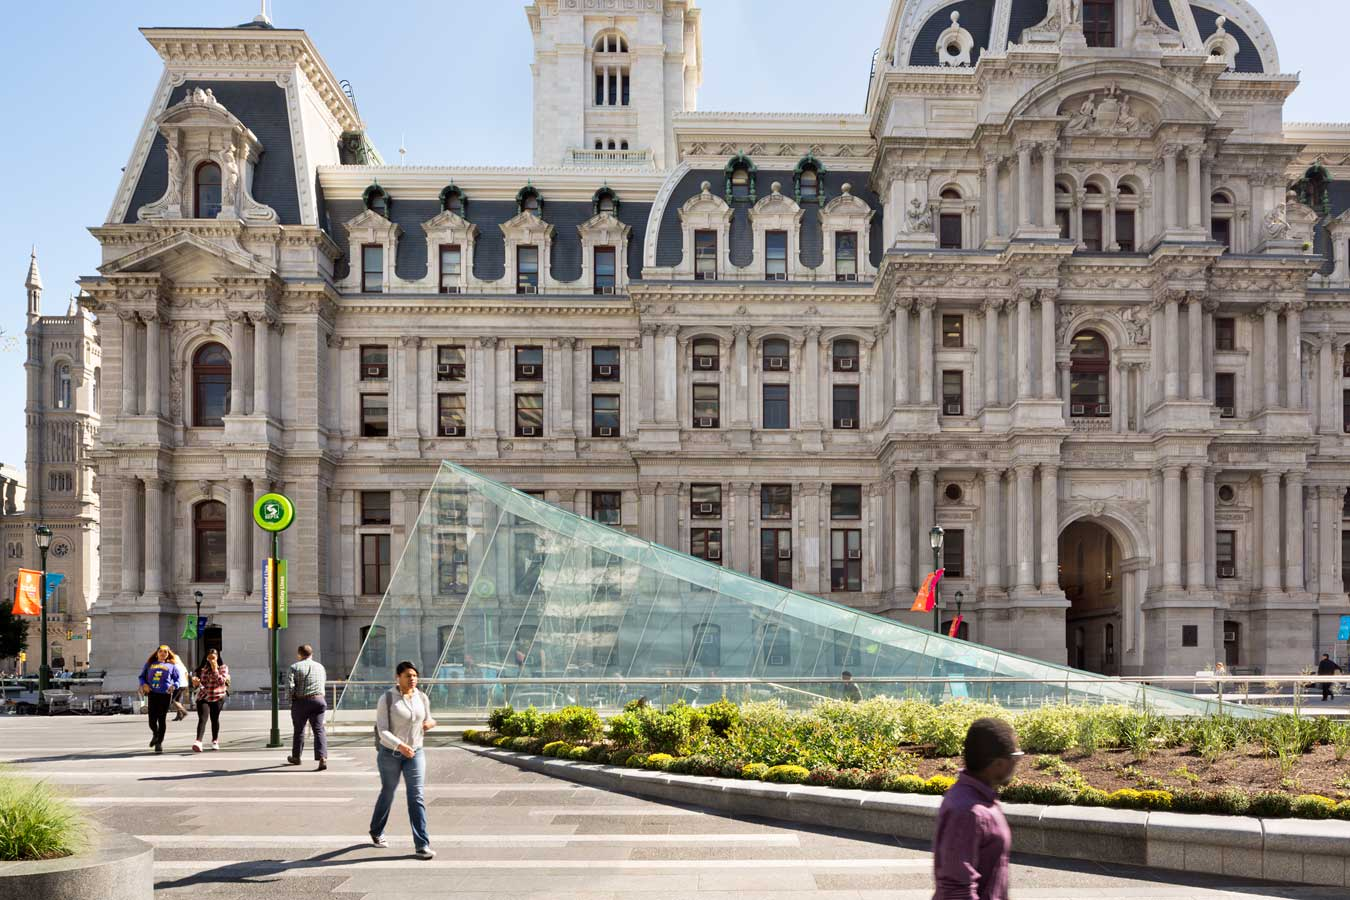 <p>The landscape and architecture work together to enhance and frame the views of City Hall, providing a renewed sense of place and arrival. <br><small>© James Ewing Photography</small></p>